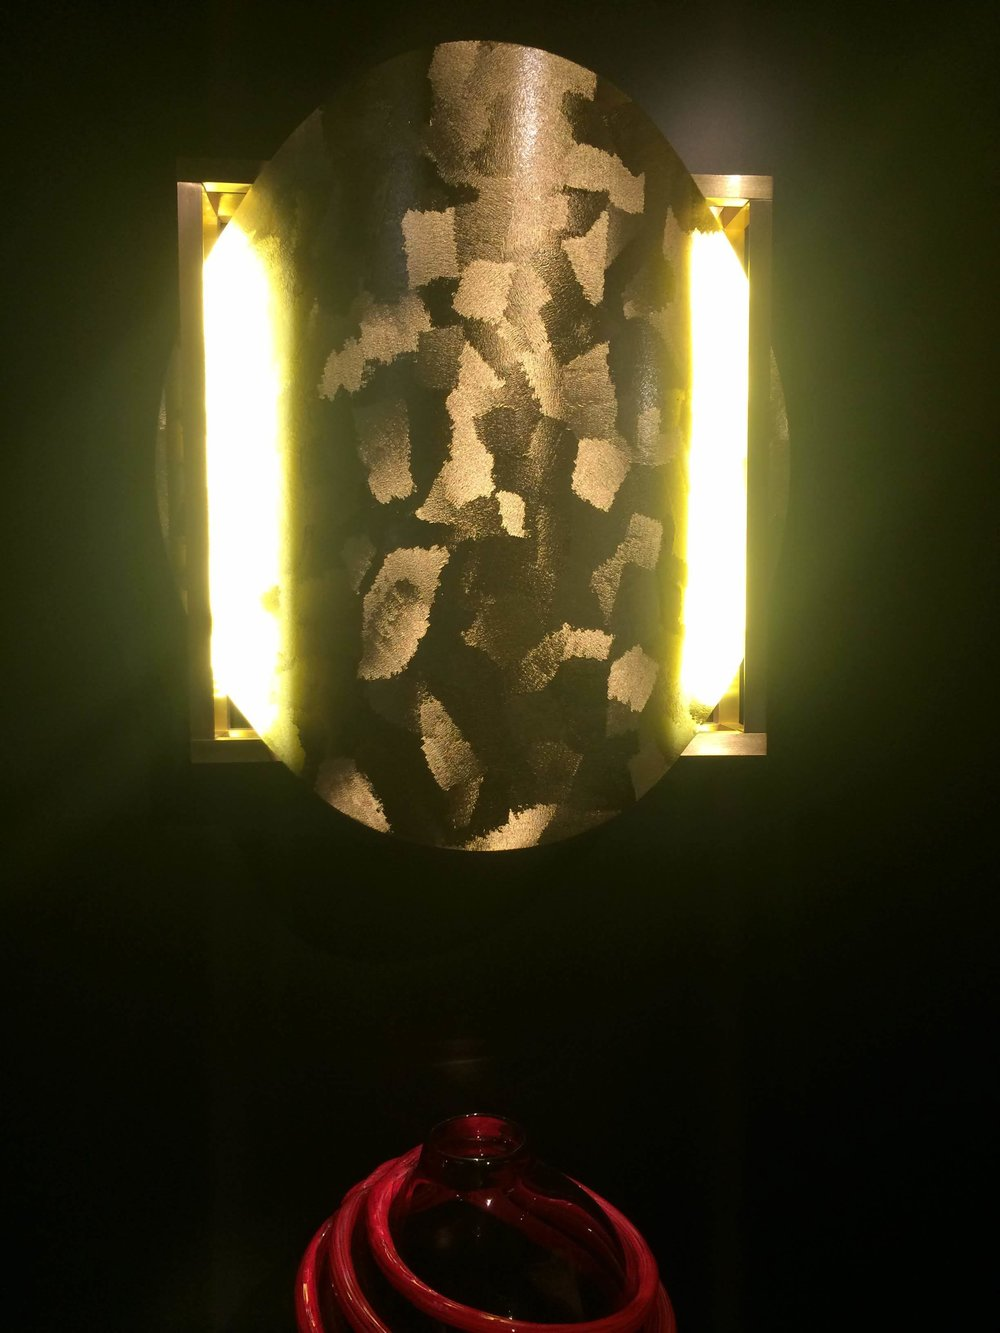 Tesoro vase and Ray wall light by Pierre Gonalons. PIERRE GONALONS EDITIONS